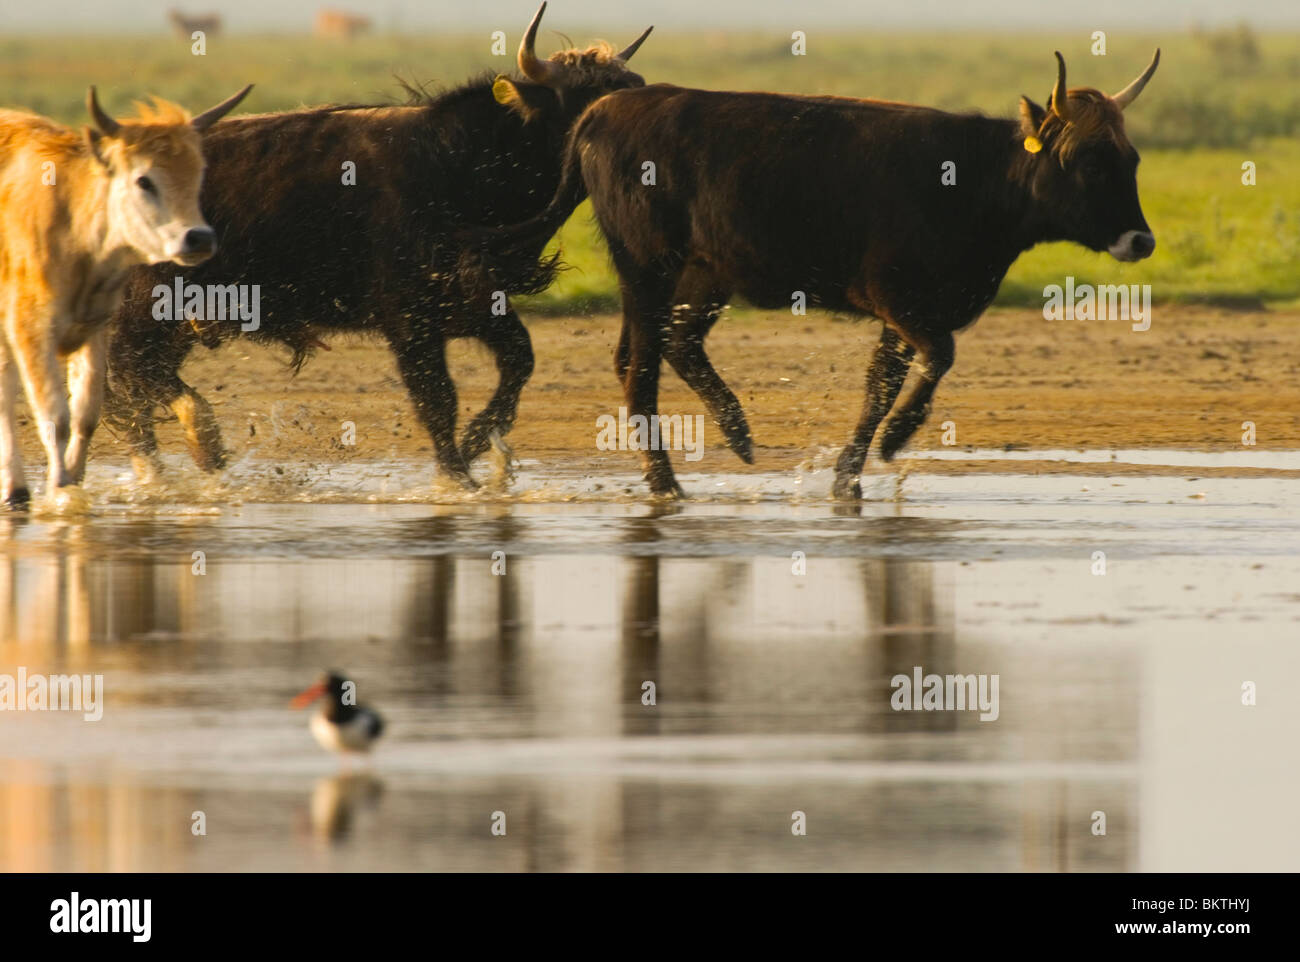 jonge heckrund stieren rennen door het water in de slikken van flakkee; young heck cattle bulls running through - Stock Image